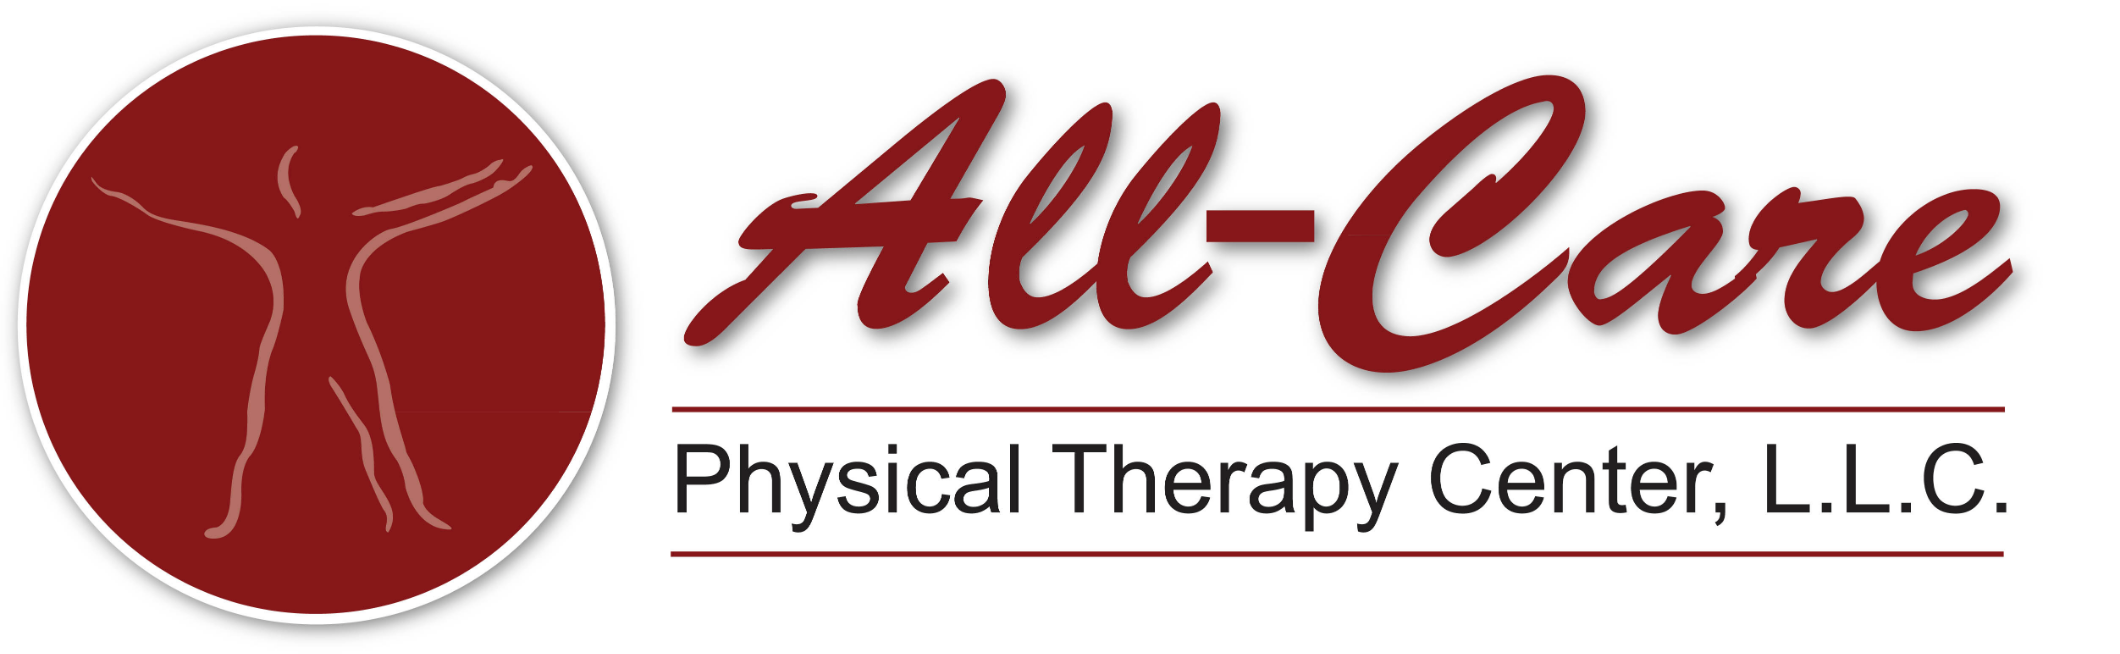 All Care Physical Therapy, LLC. - Whiting, NJ 08759 - (732)849-0700 | ShowMeLocal.com